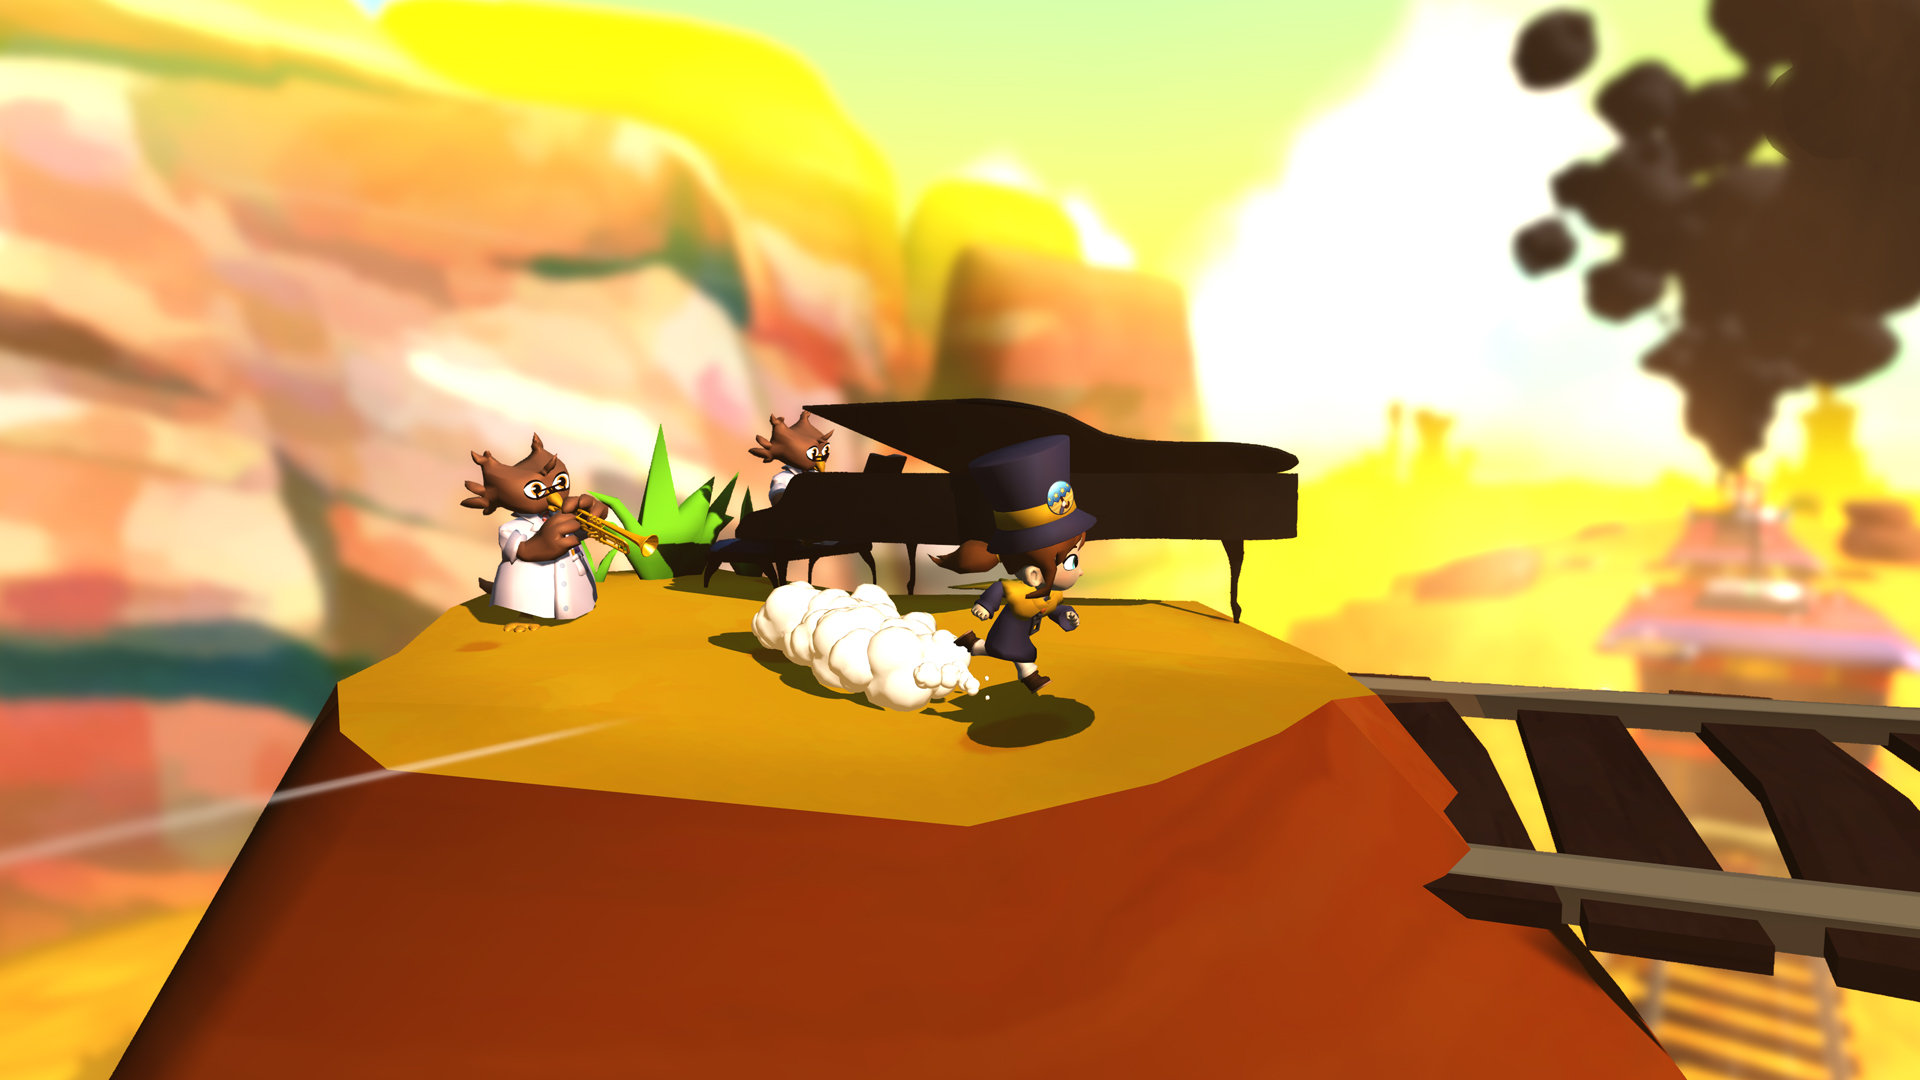 Video Game A Hat In Time 1920x1080